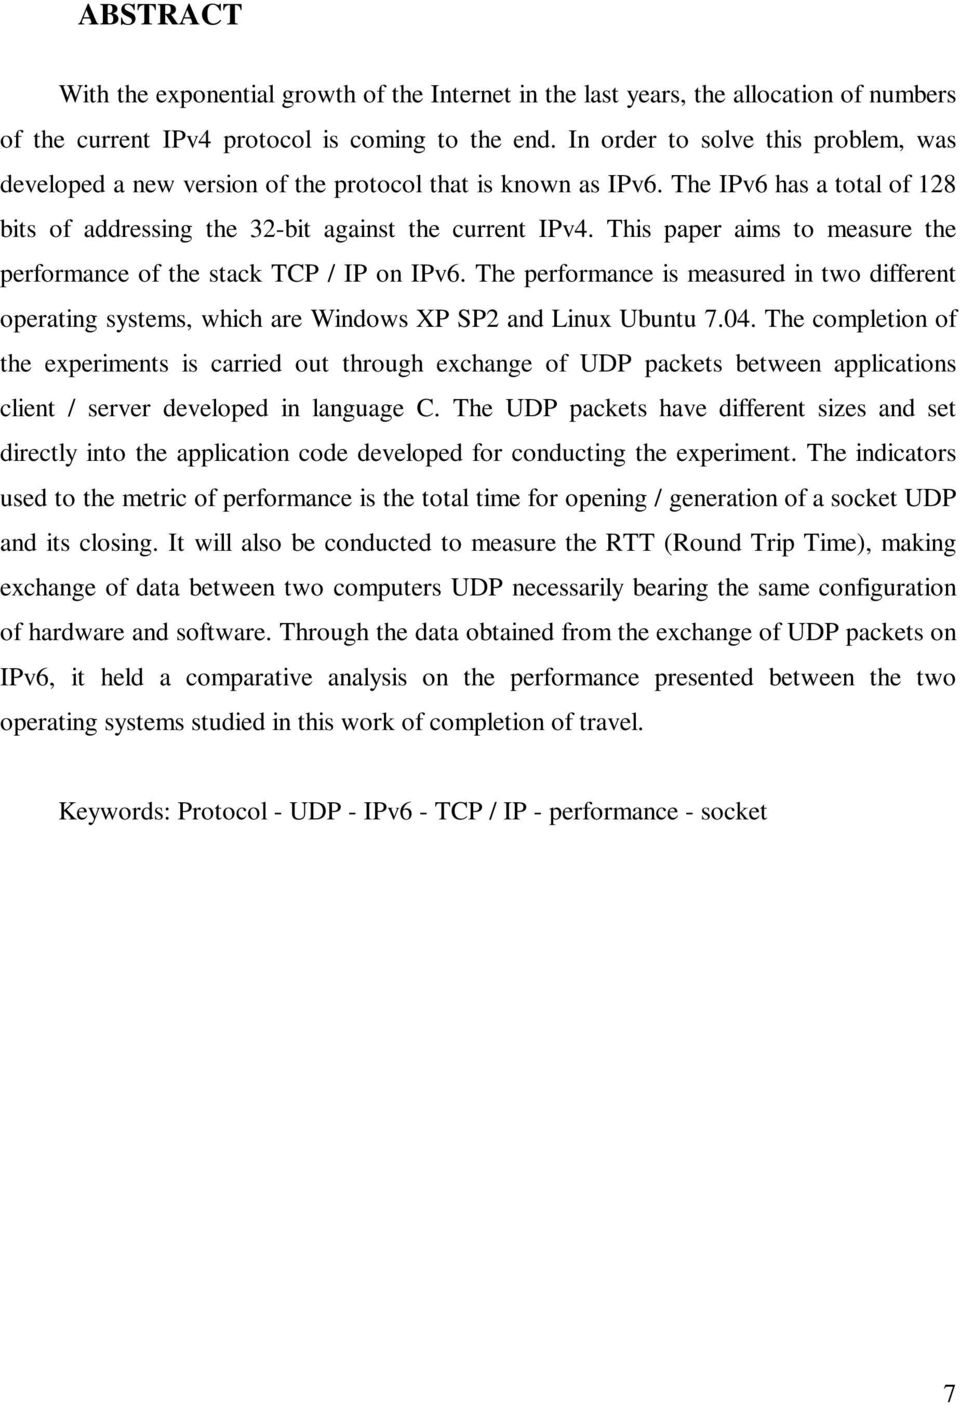 This paper aims to measure the performance of the stack TCP / IP on IPv6. The performance is measured in two different operating systems, which are Windows XP SP2 and Linux Ubuntu 7.04.